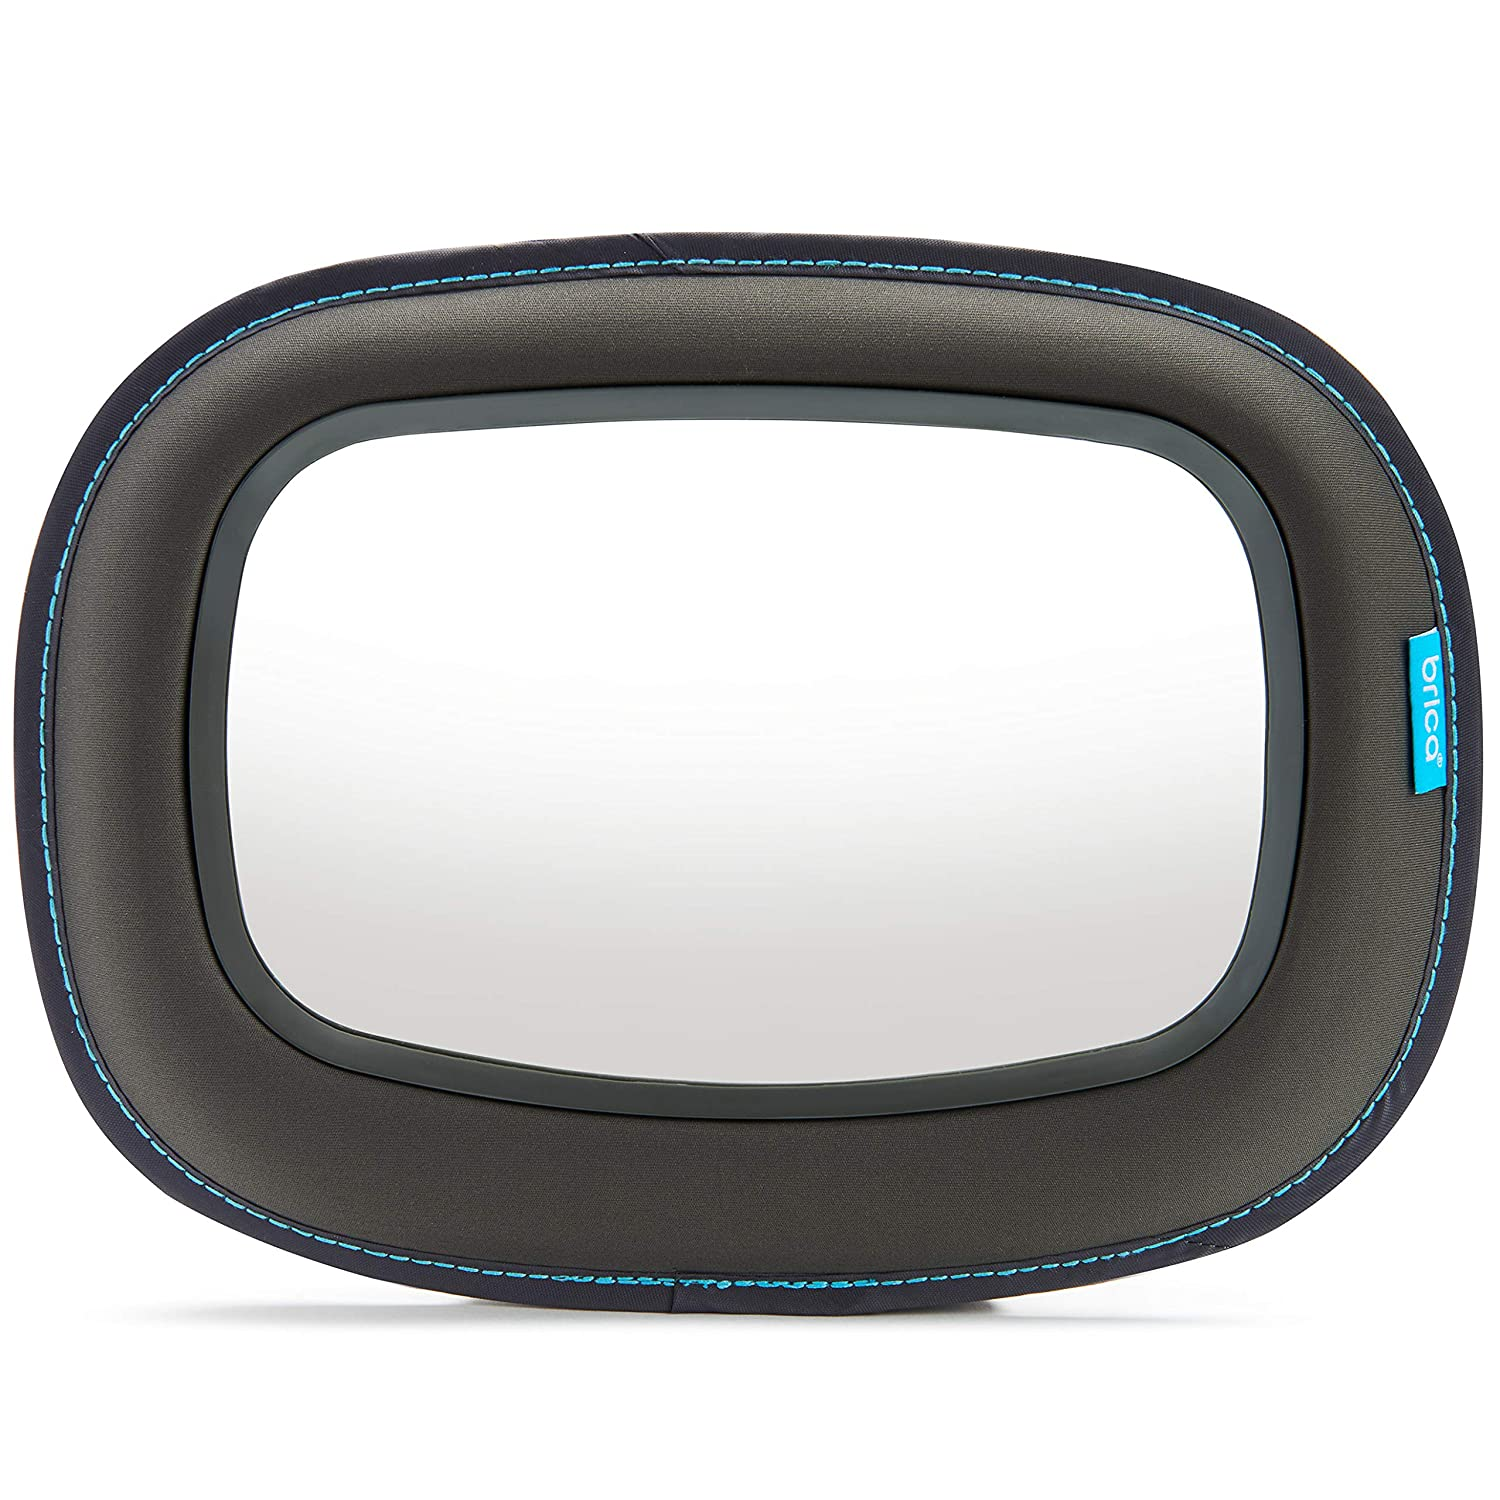 BRICA Baby In-Sight Auto Mirror for in Car Safety Munchkin 63010